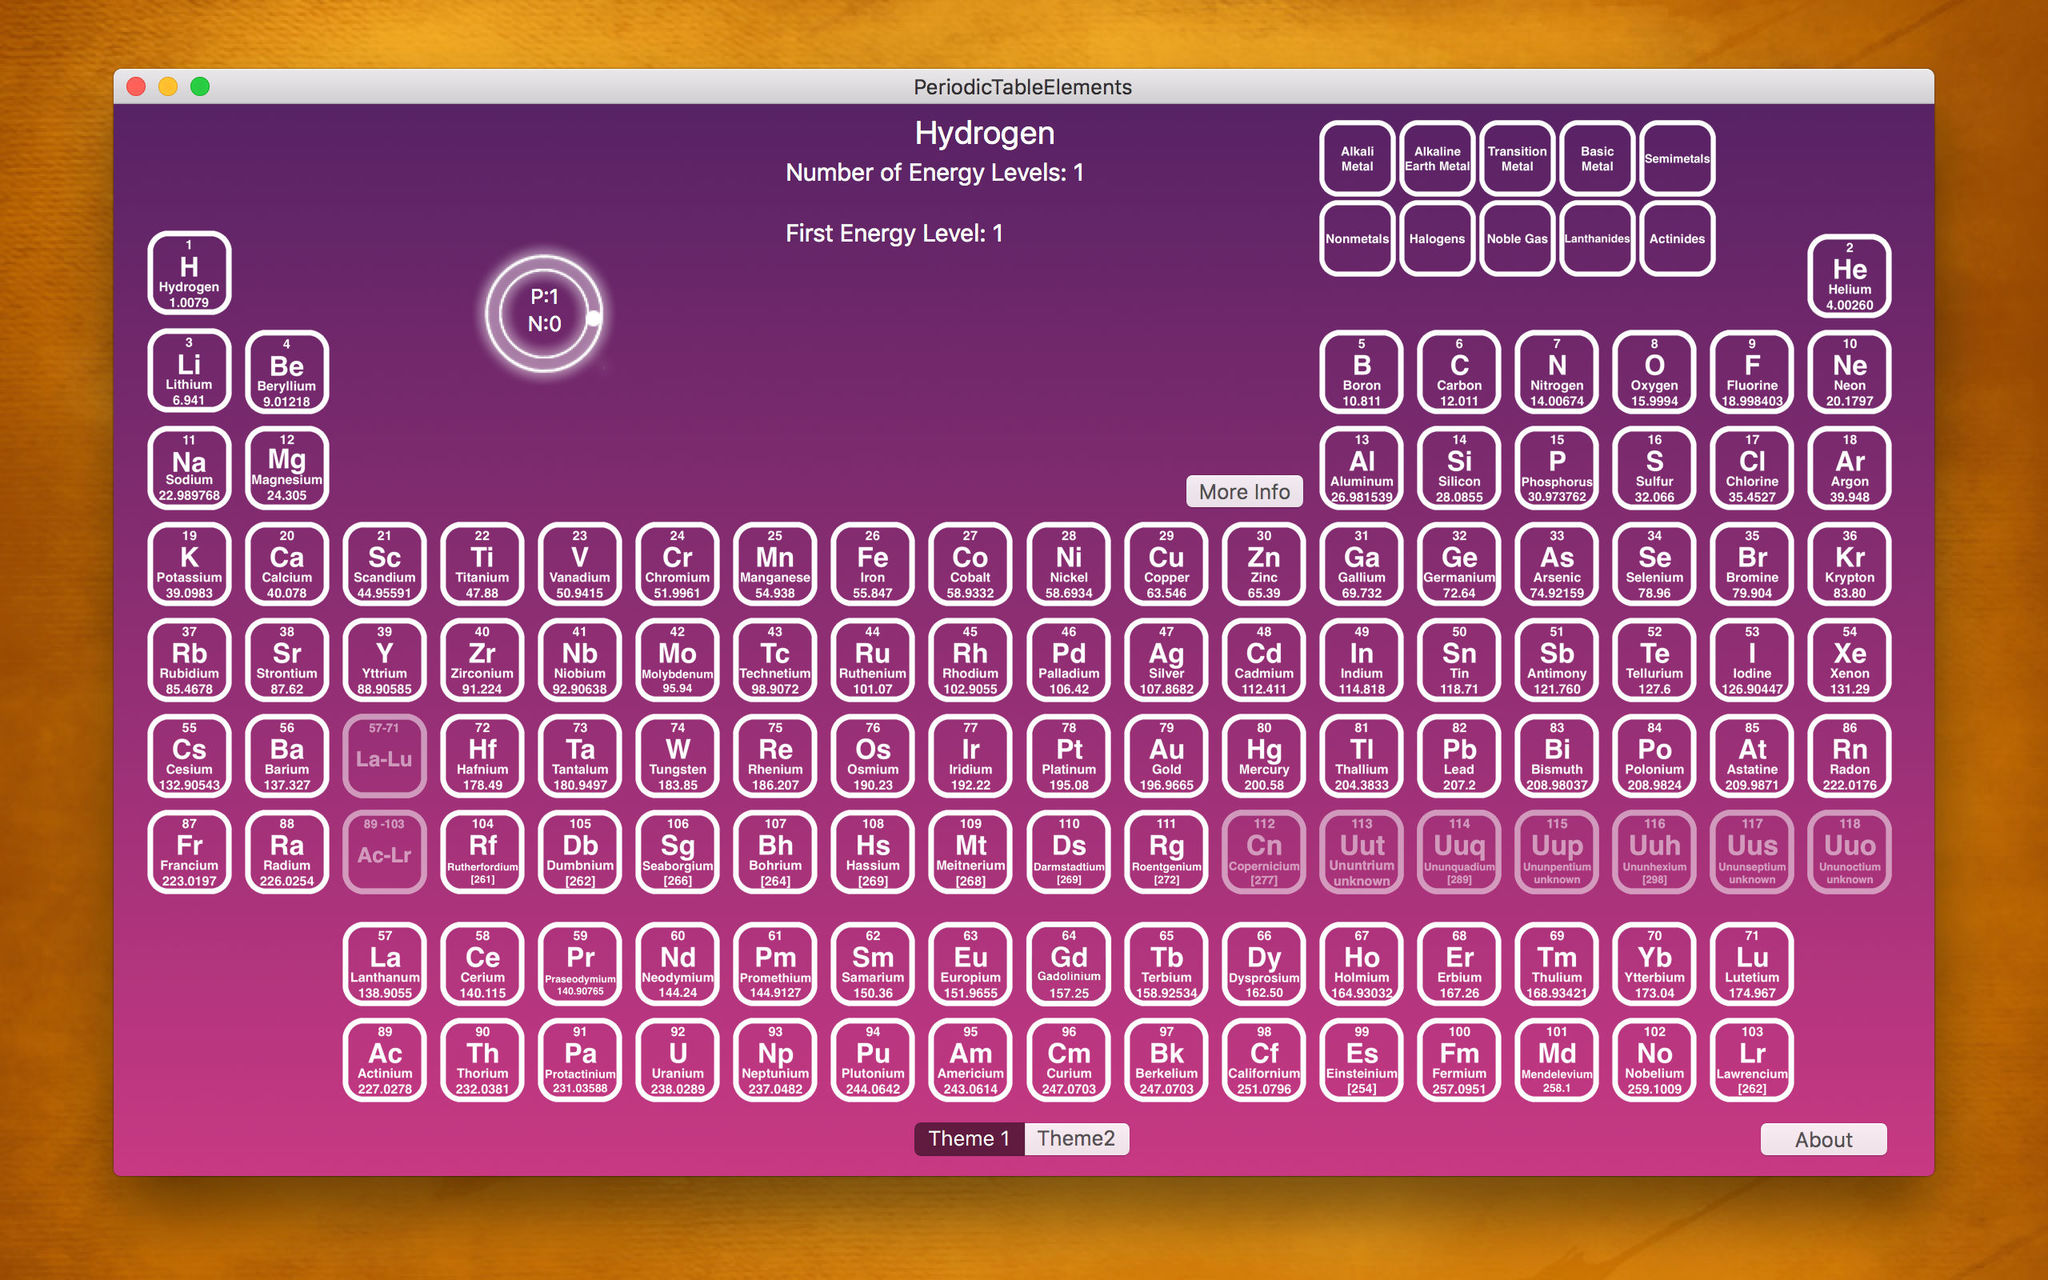 Screenshot 1 for PeriodicTableElements